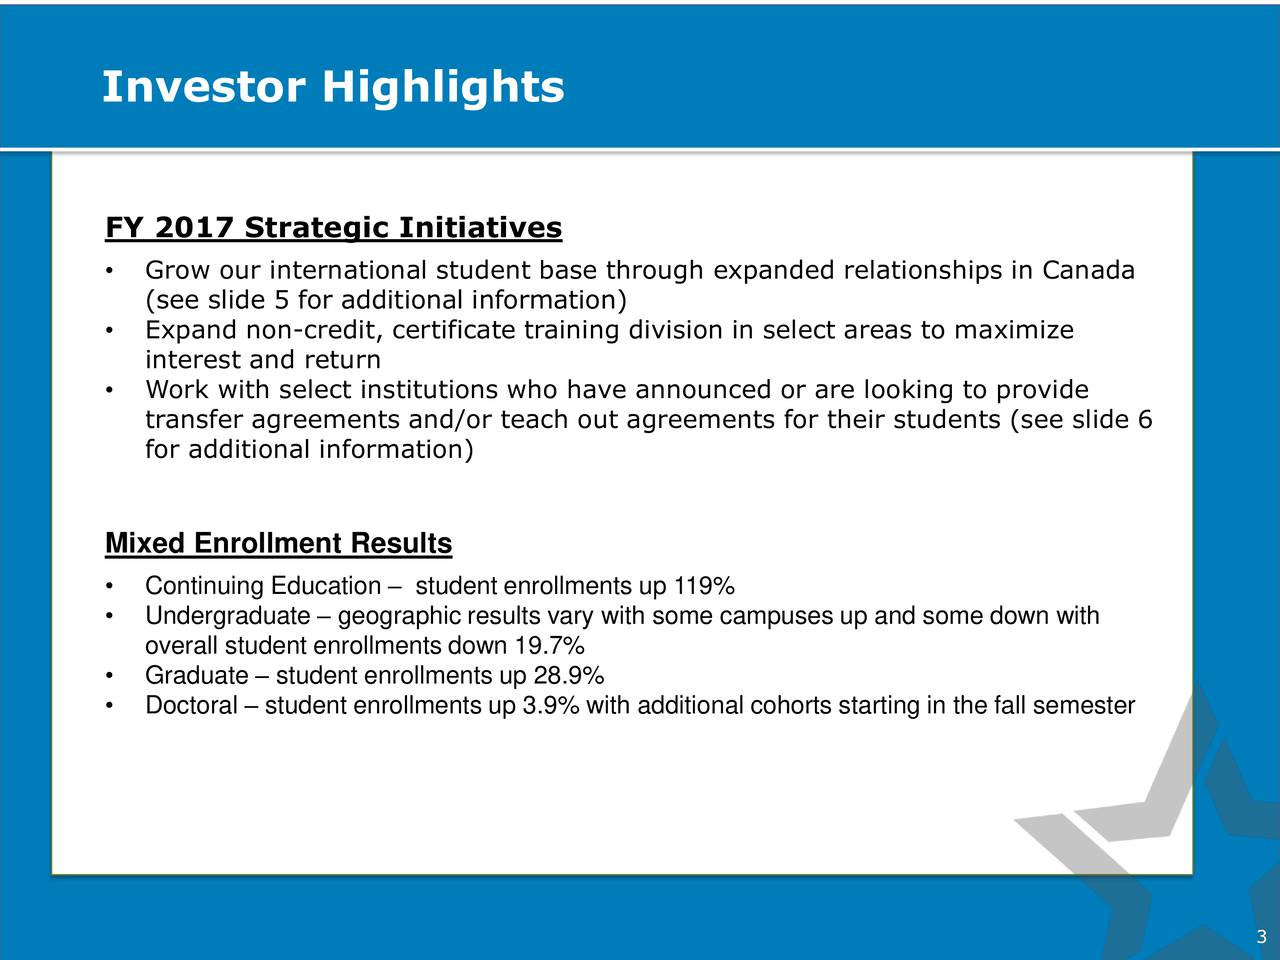 3 Investor Highlights FY 2017 Strategic Initiatives Grow our international student base through expanded relationships in Canada (see slide 5 for additional information) Expand non-credit, certificate training division in select areas to maximize interest and return Work with select institutions who have announced or are looking to provide transfer agreements and/or teach out agreements for their students (see slide 6 for additional information) Mixed Enrollment Results Continuing Education   student enrollments up 119% Undergraduate  geographic results vary with some campuses up and some down with overall student enrollments down 19.7% Graduate  student enrollments up 28.9% Doctoral  student enrollments up 3.9% with additional cohorts starting in the fall semester